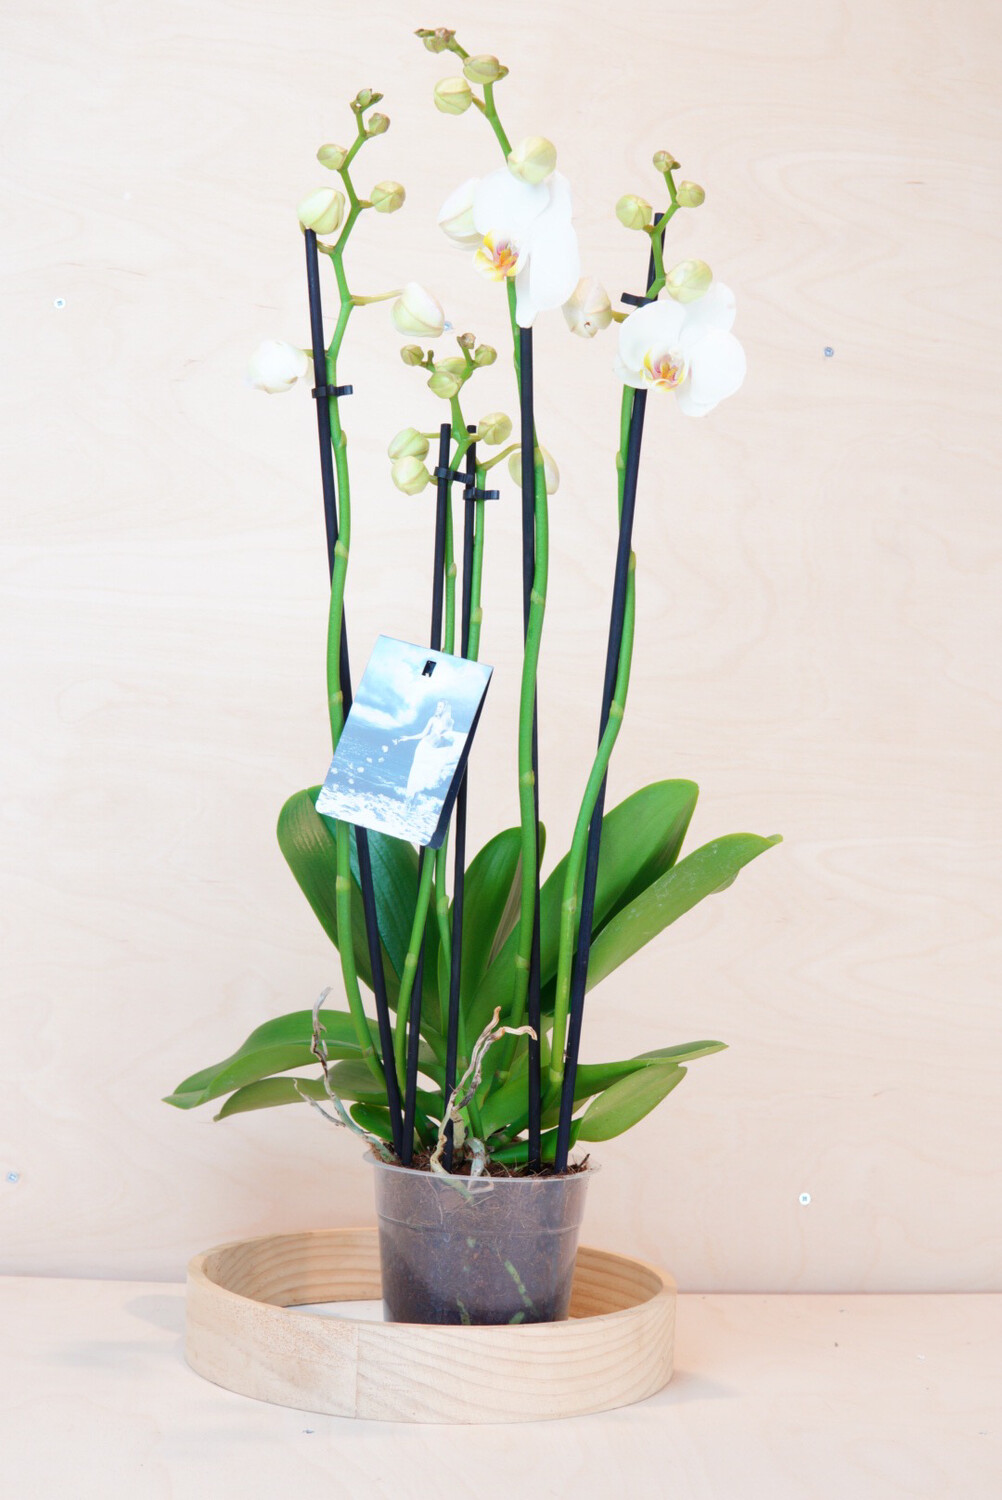 Orchidee 5 Triebe, weiss